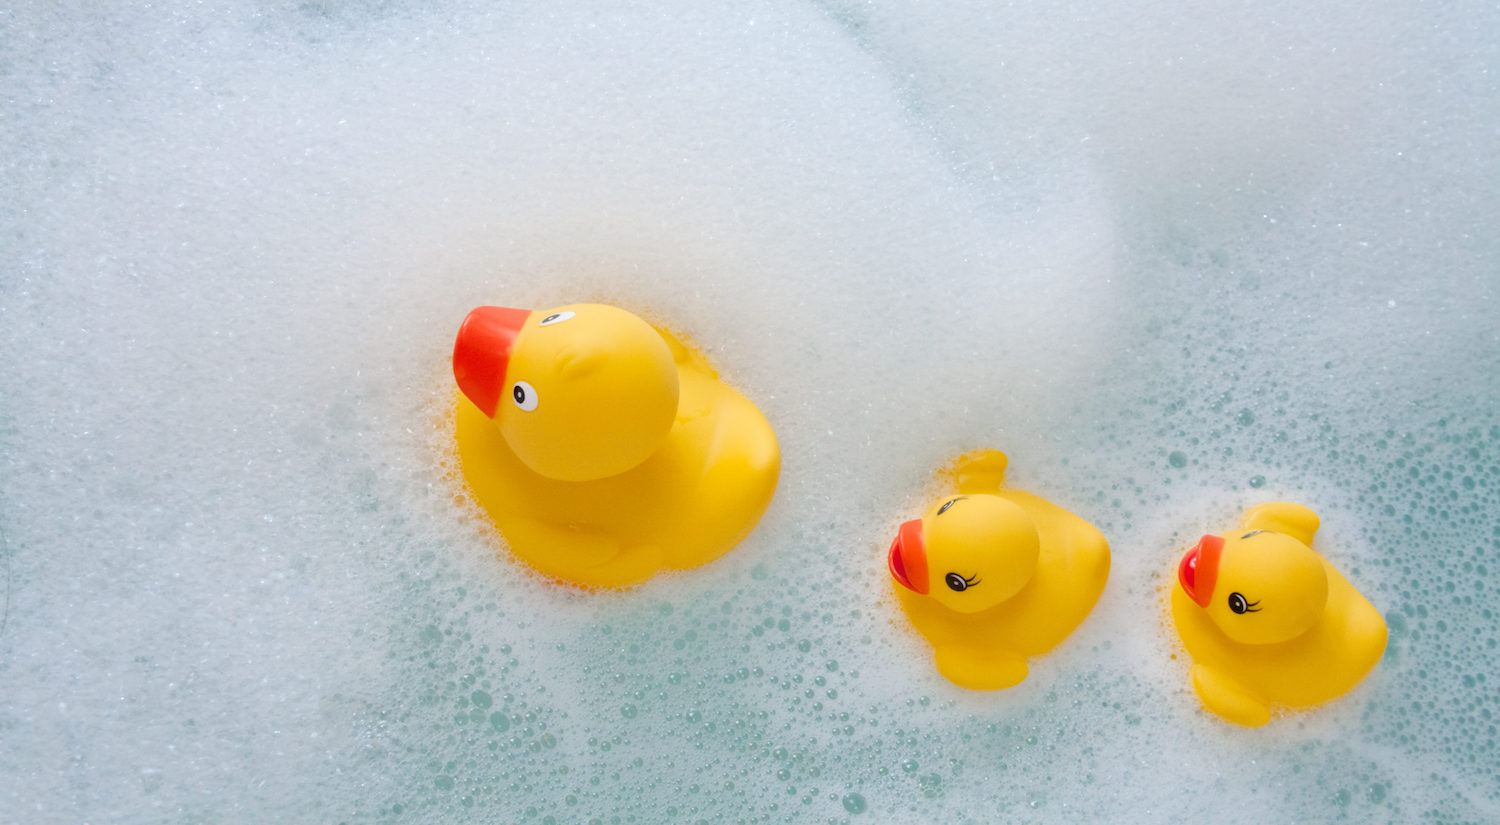 baby bath time tips Yellow rubber duckies swimming in bubbles at bath time